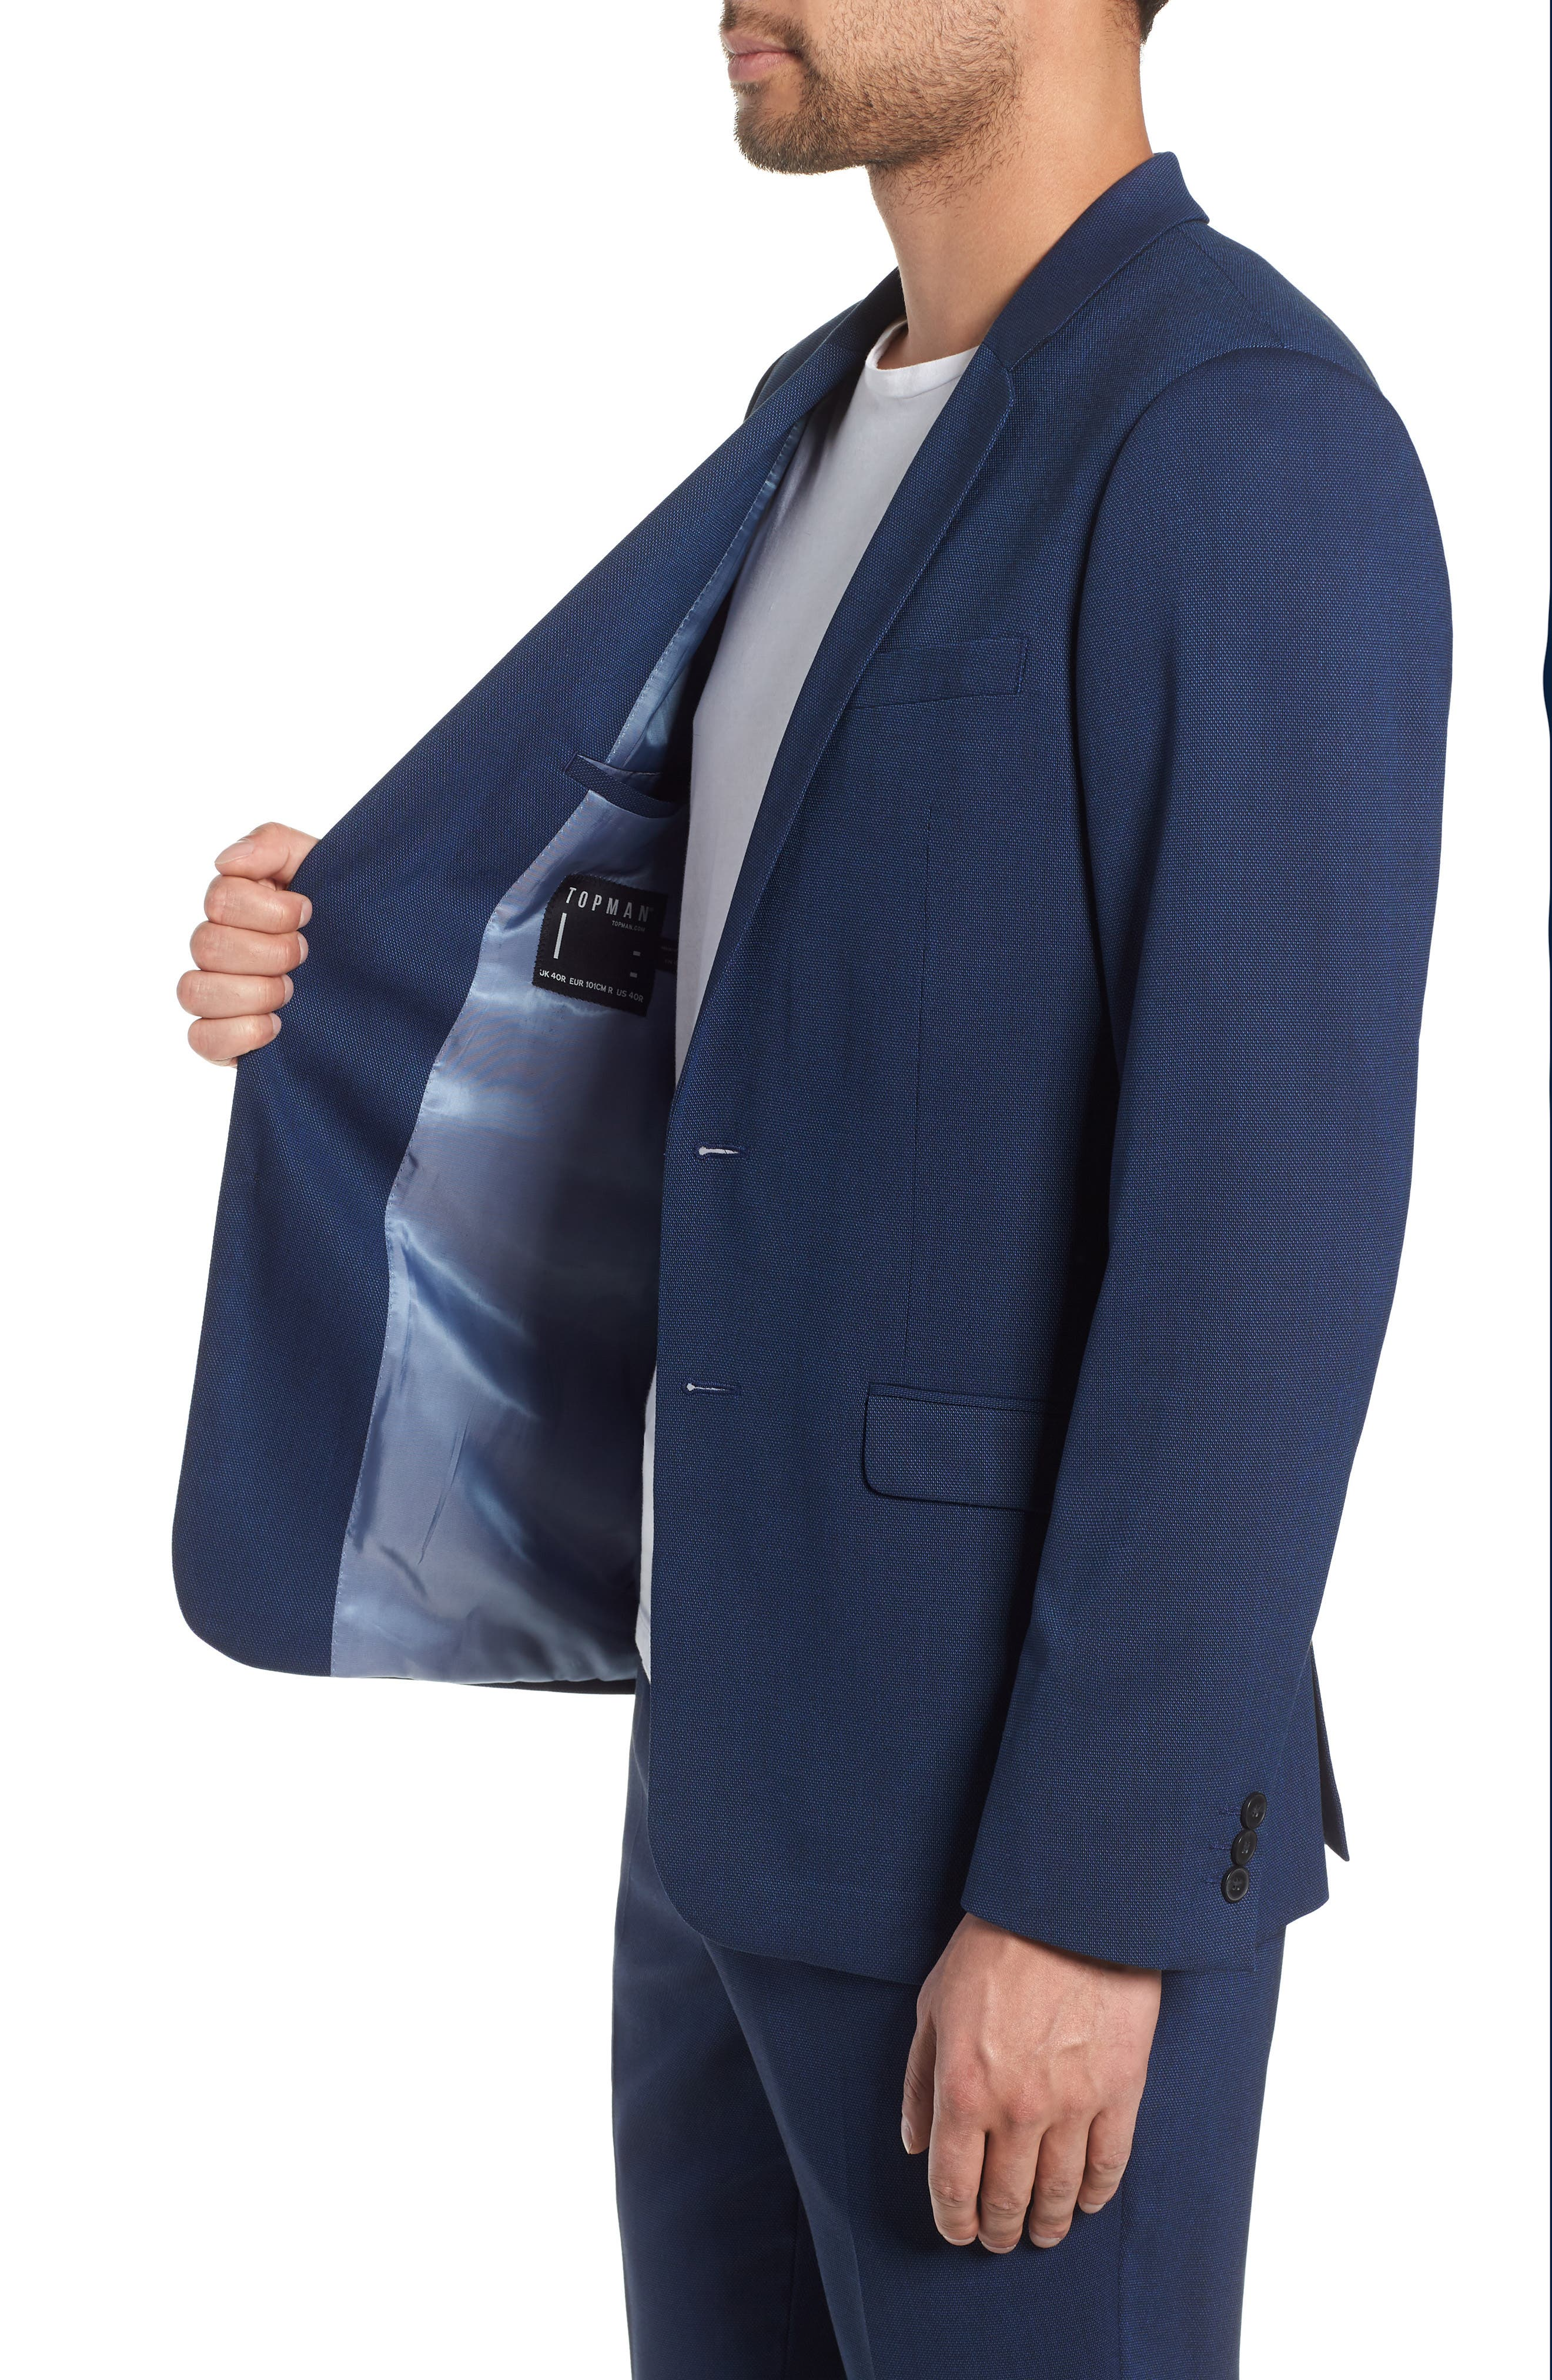 Skinny Fit Suit Jacket,                             Alternate thumbnail 3, color,                             Blue